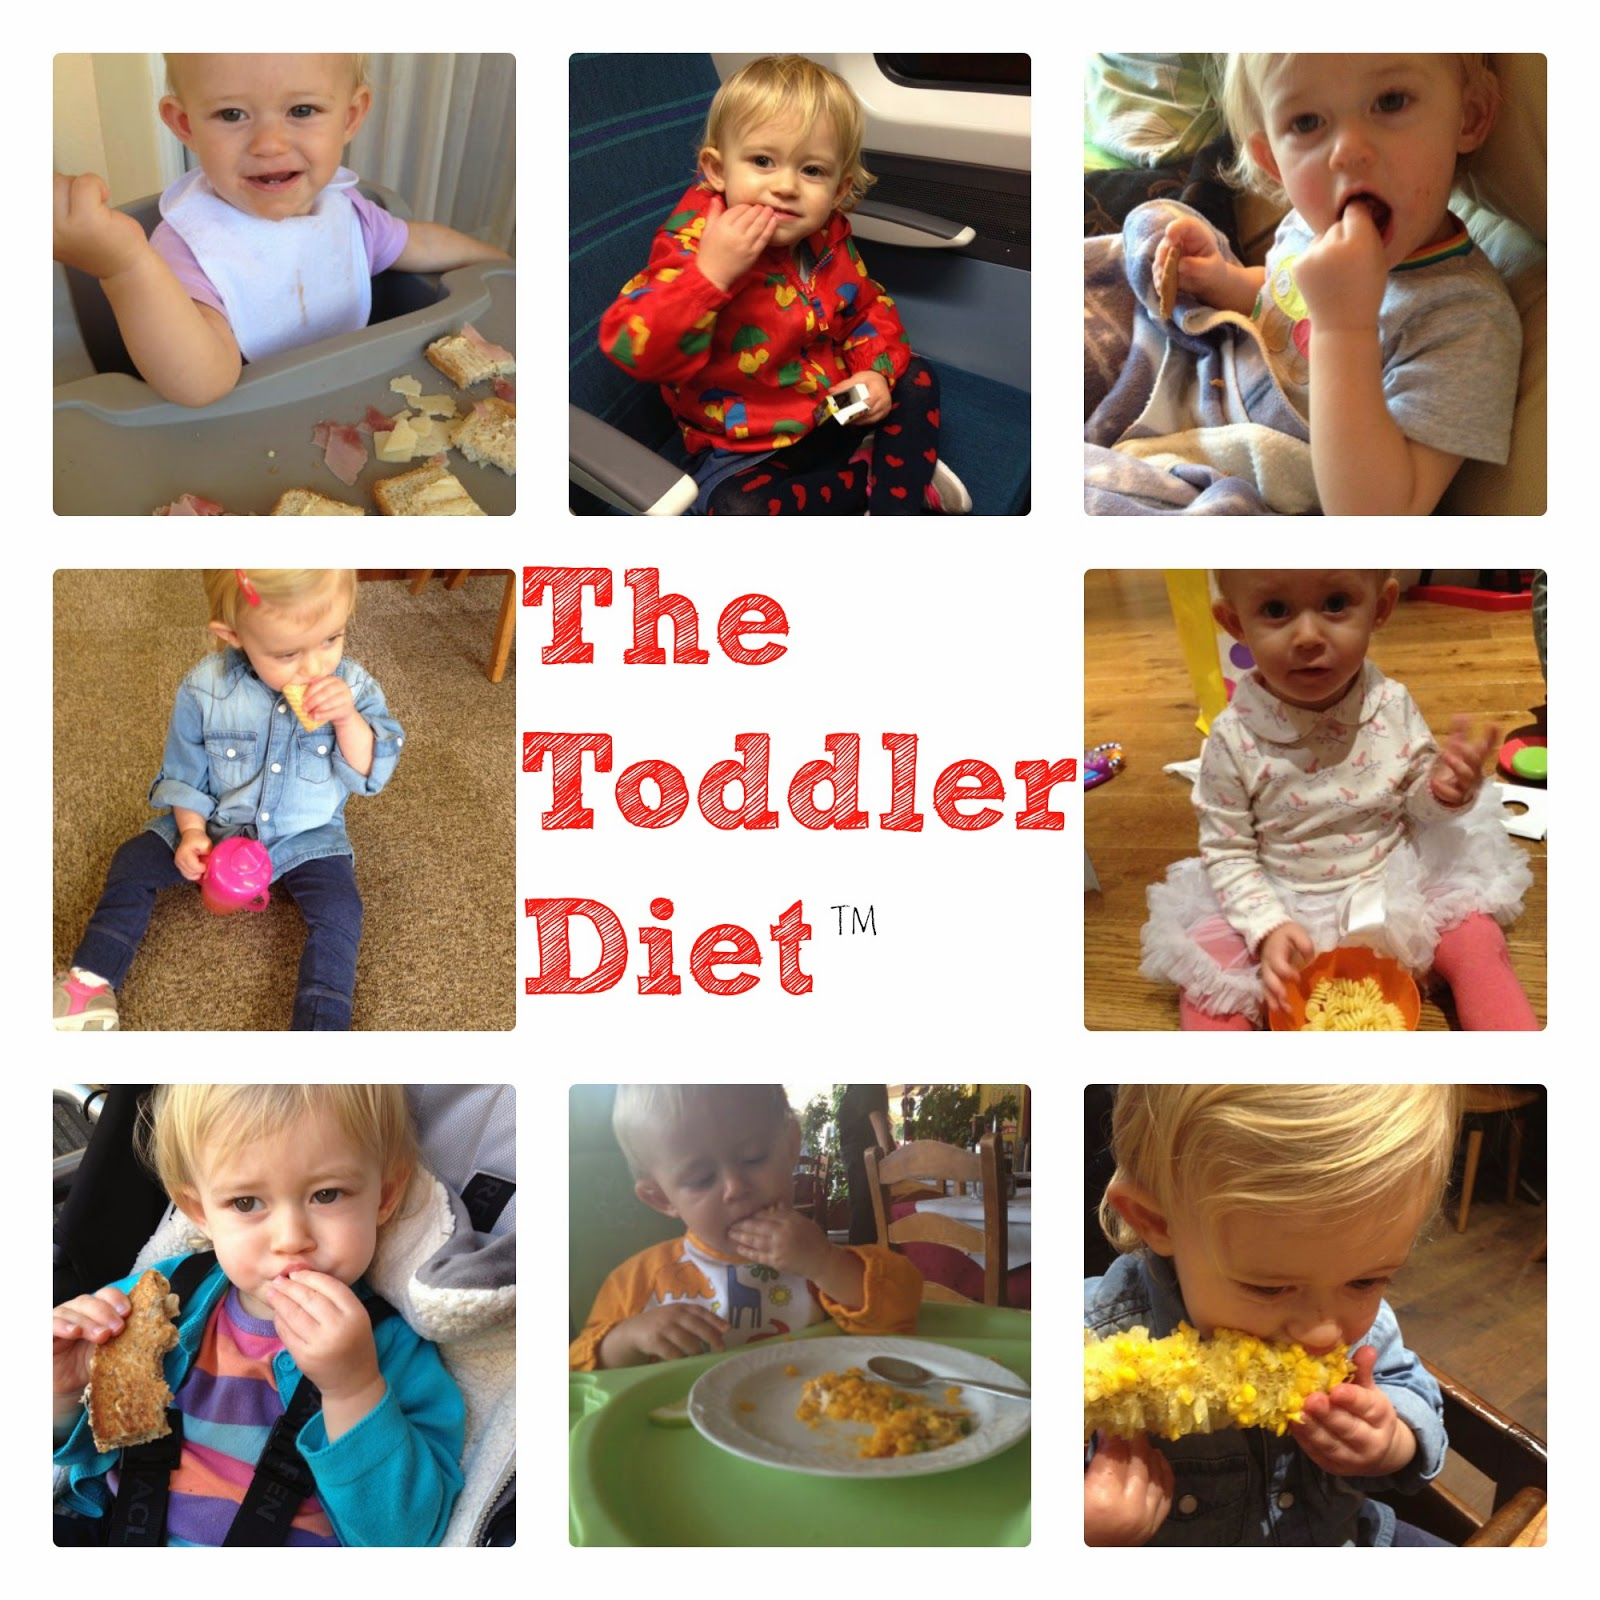 20 Diet Tips I could learn from my Toddler | V. I. BABYBRAIN